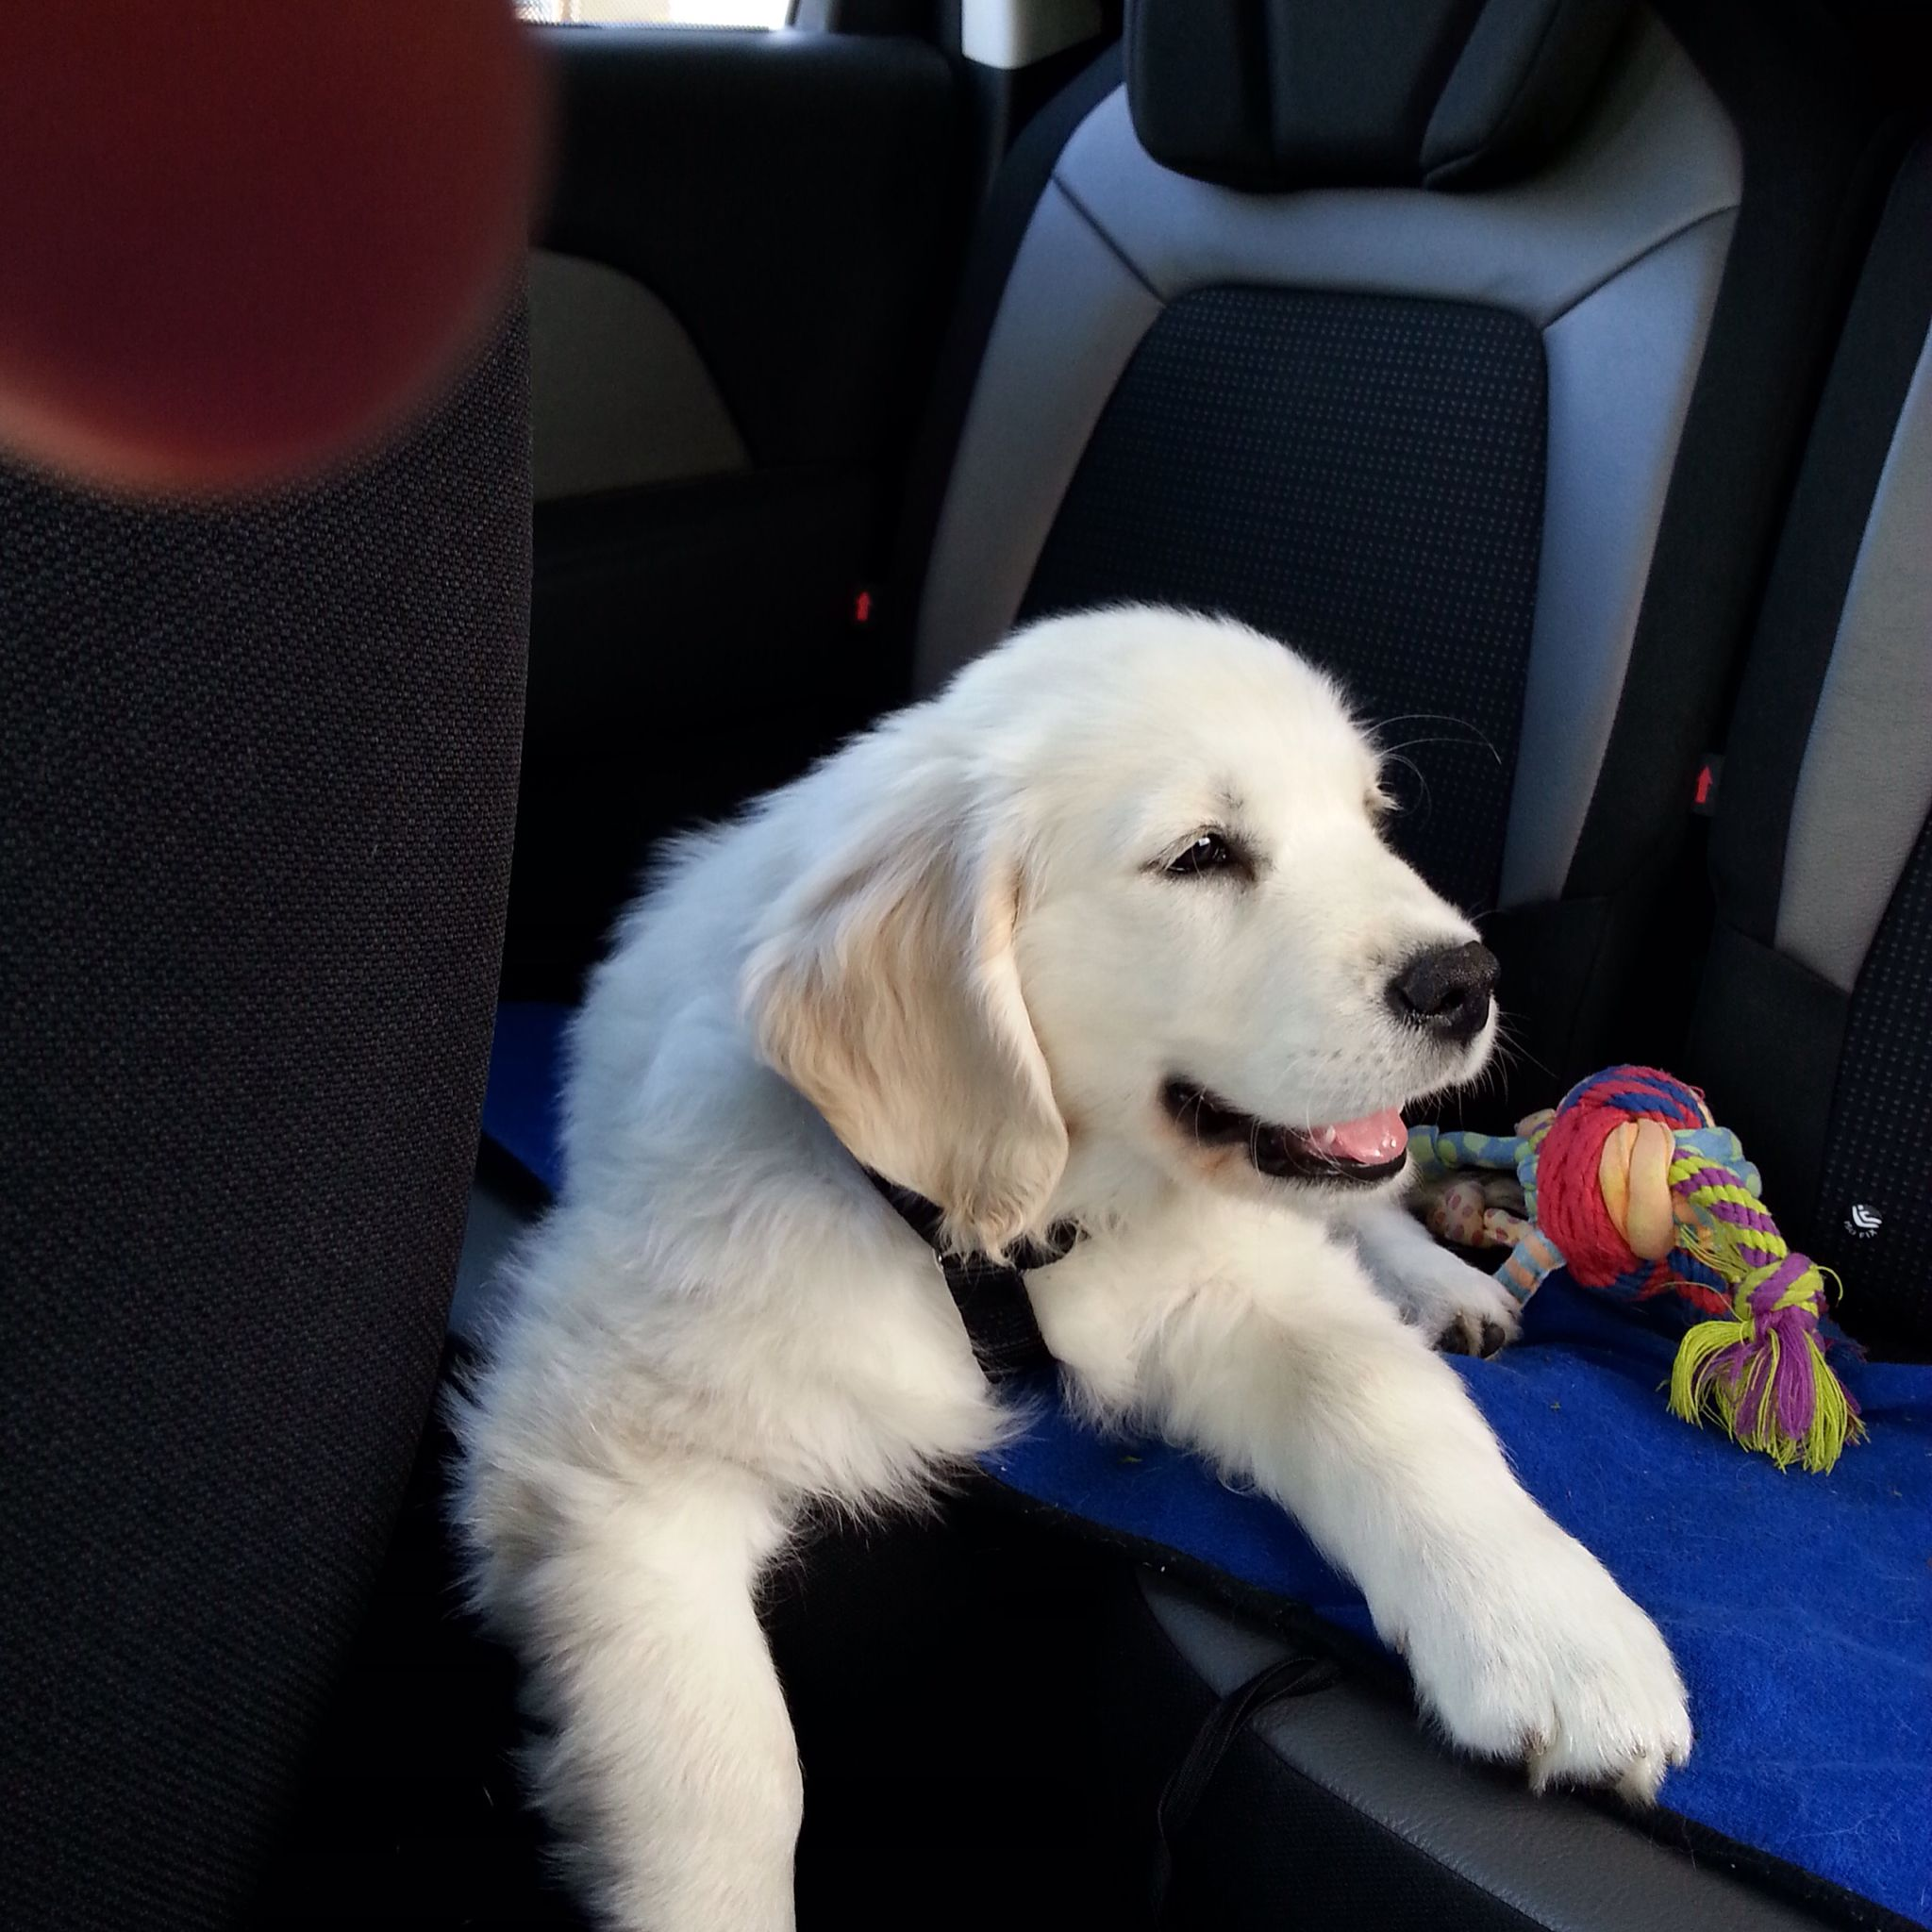 La voiture. J'adore !!! White golden retriever puppy